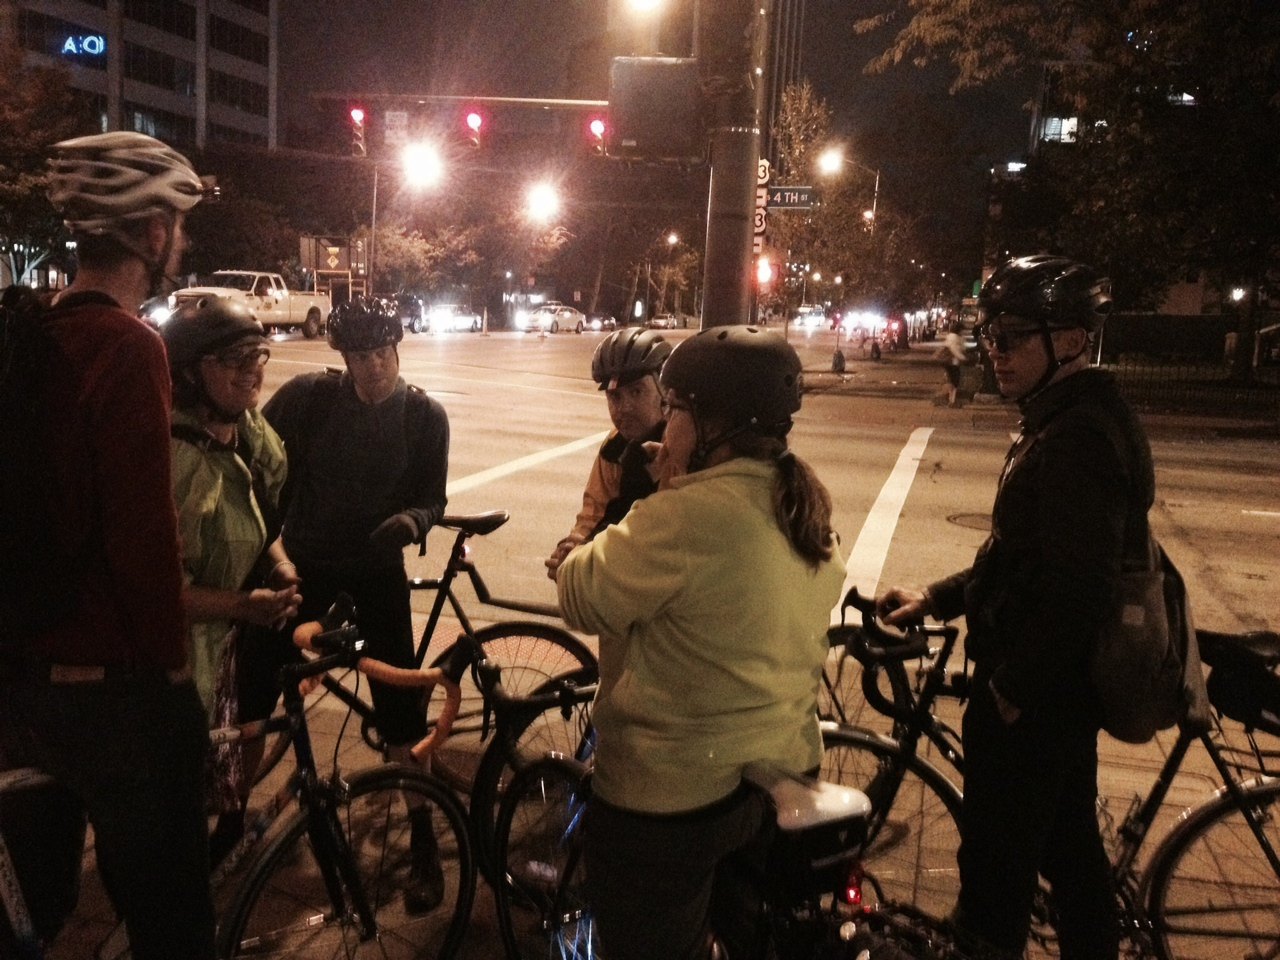 Yay Bikes! members reviewing the proposed bicycle accommodations on 4th Street Downtown. Photo credit: MJ Reed